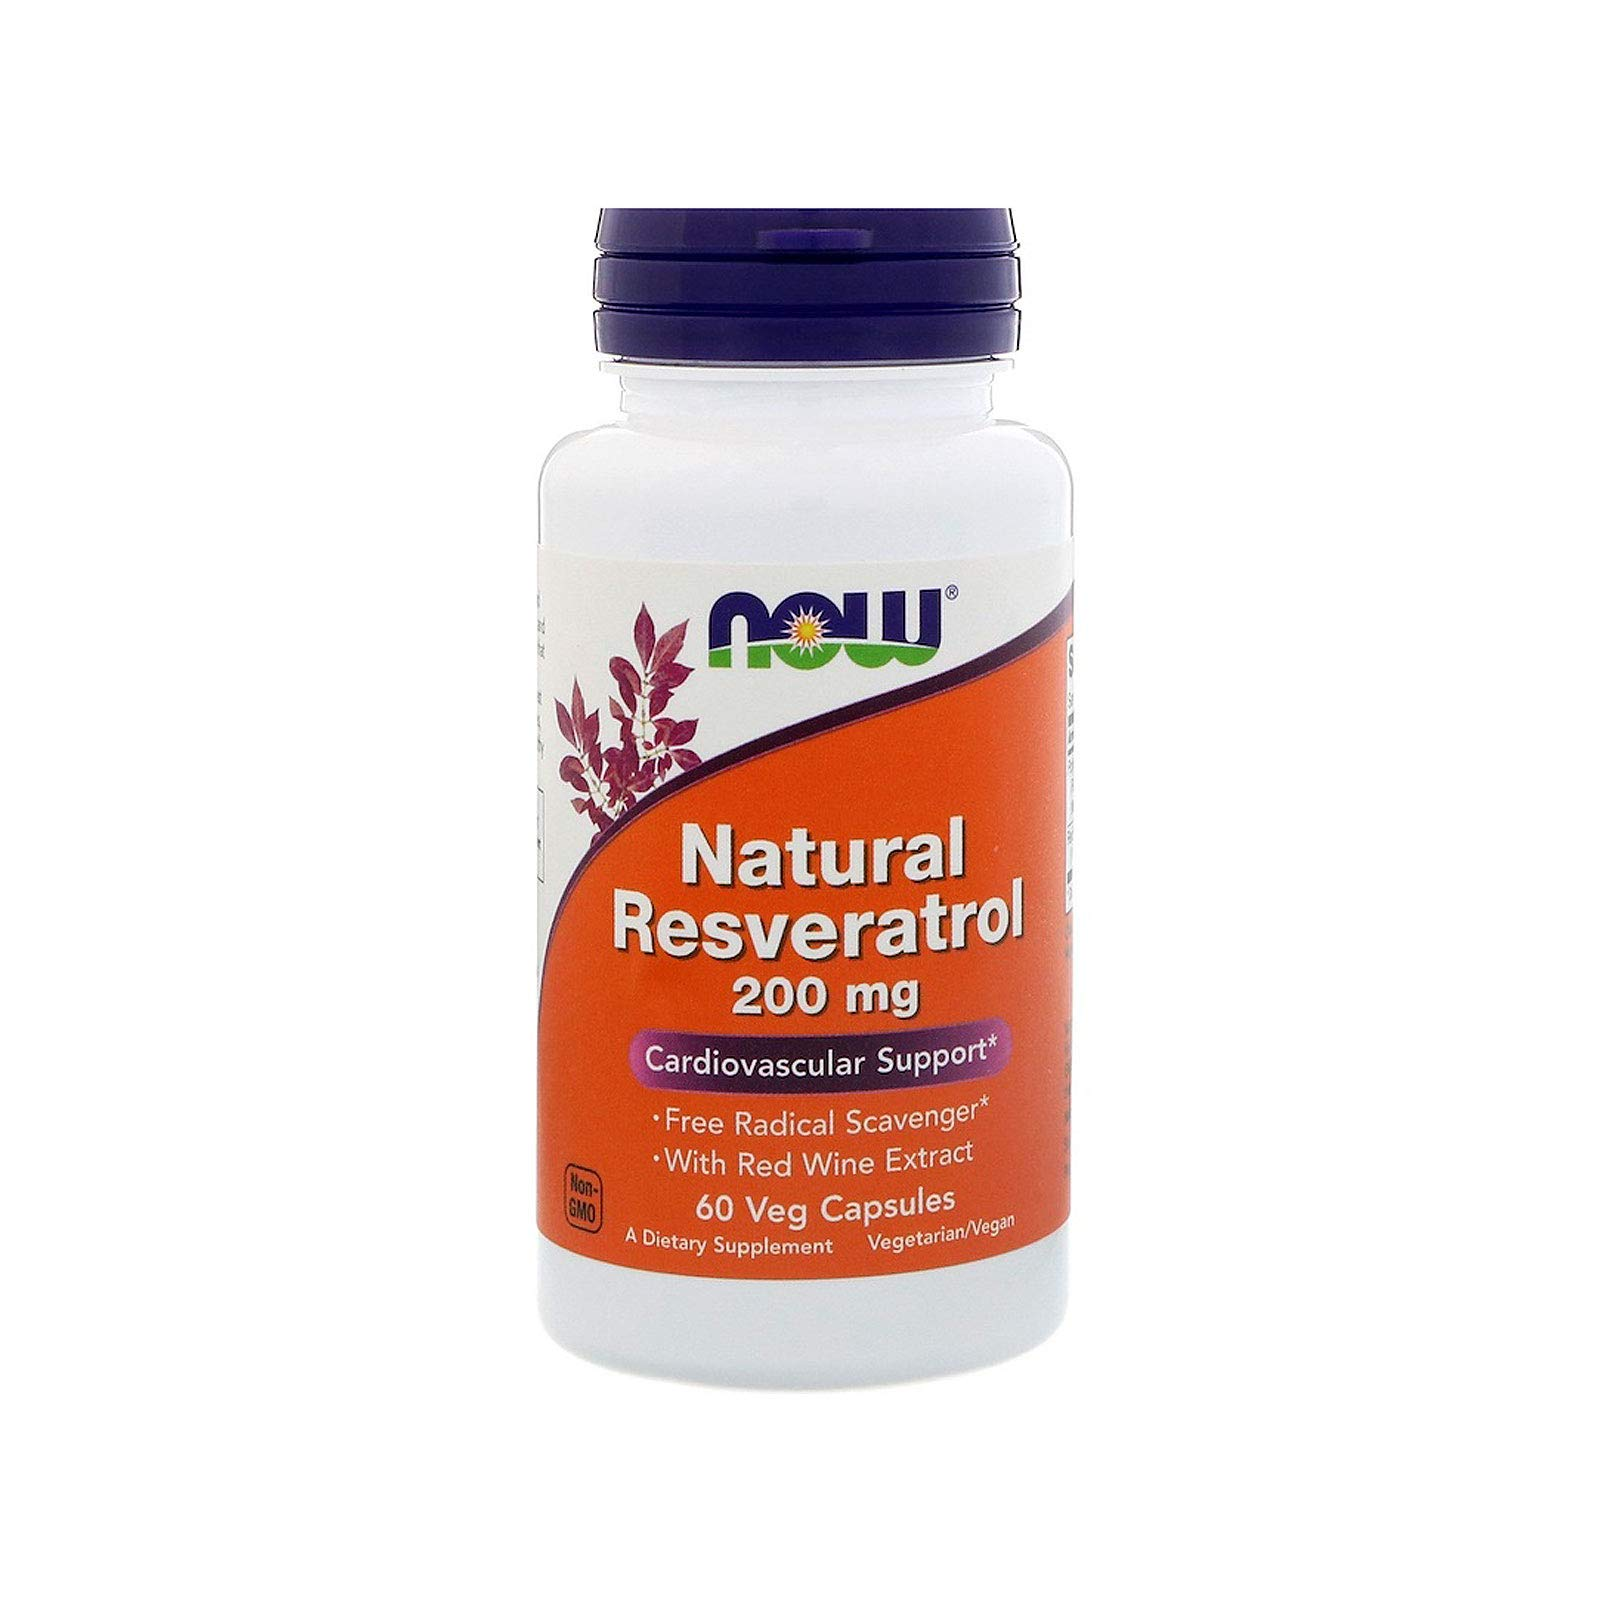 NOW Supplements, Natural Resveratrol 200 mg with Red Wine Extract, 60 Veg Capsules by NOW Foods